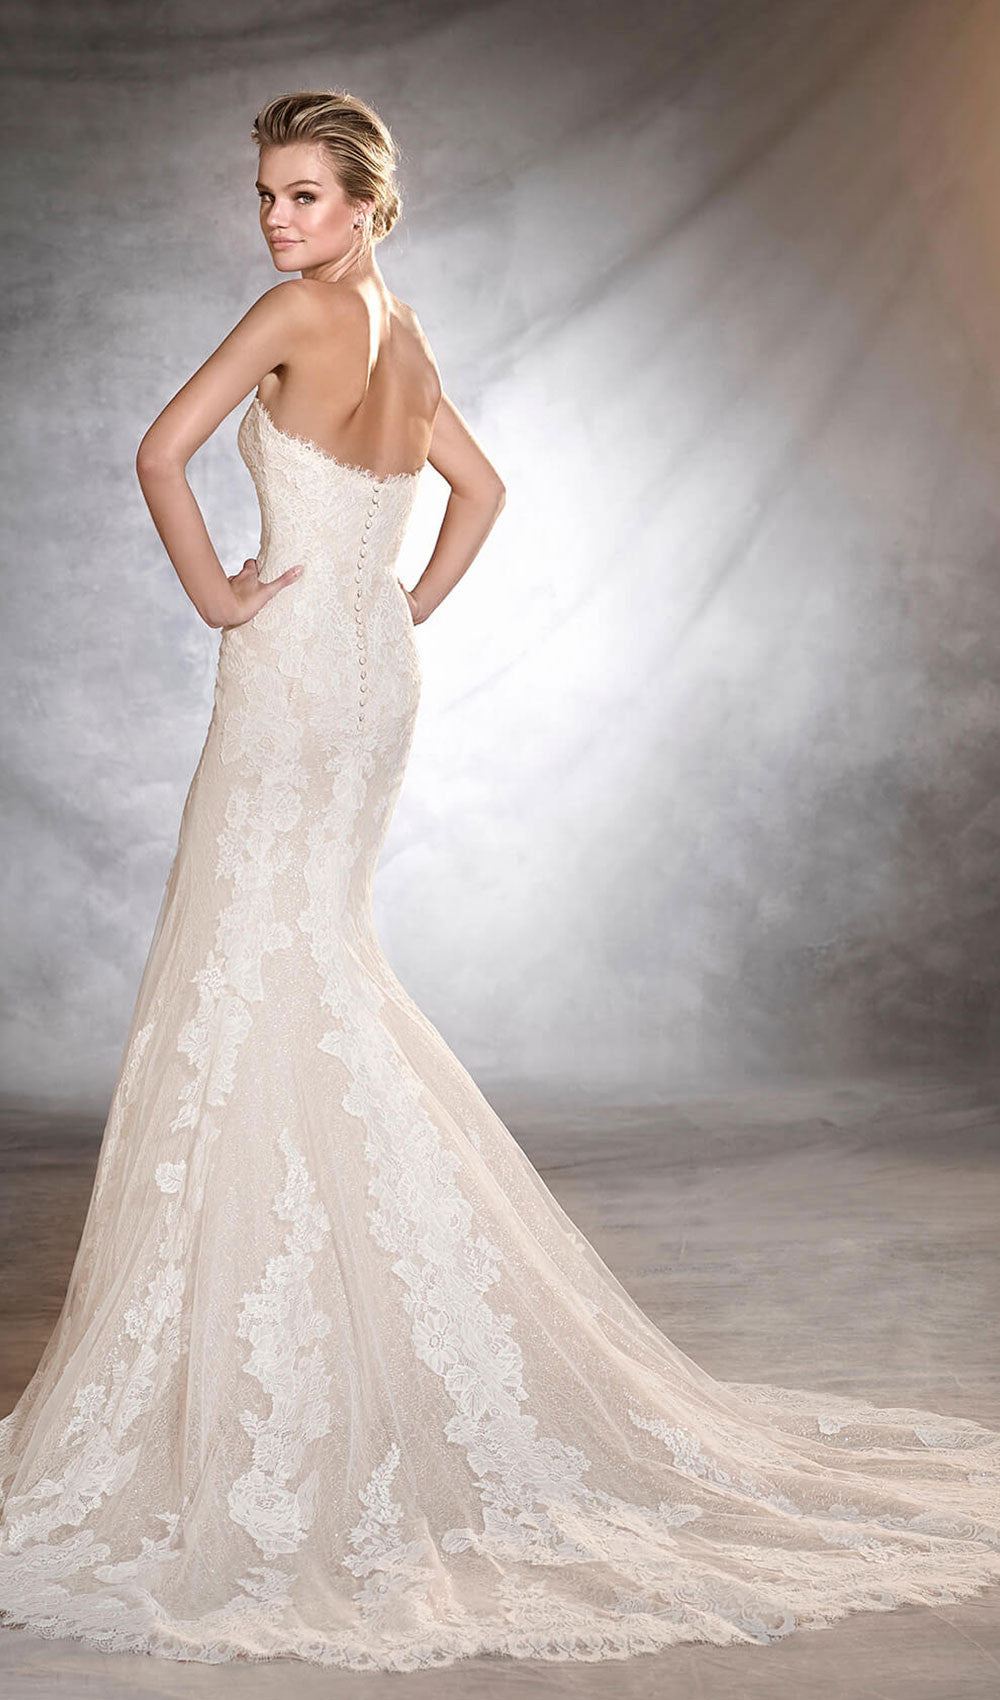 Pronovias - STYLE ORLAN| Schaffer's Bridal in Des Moines, Iowa and in Scottsdale, Arizona